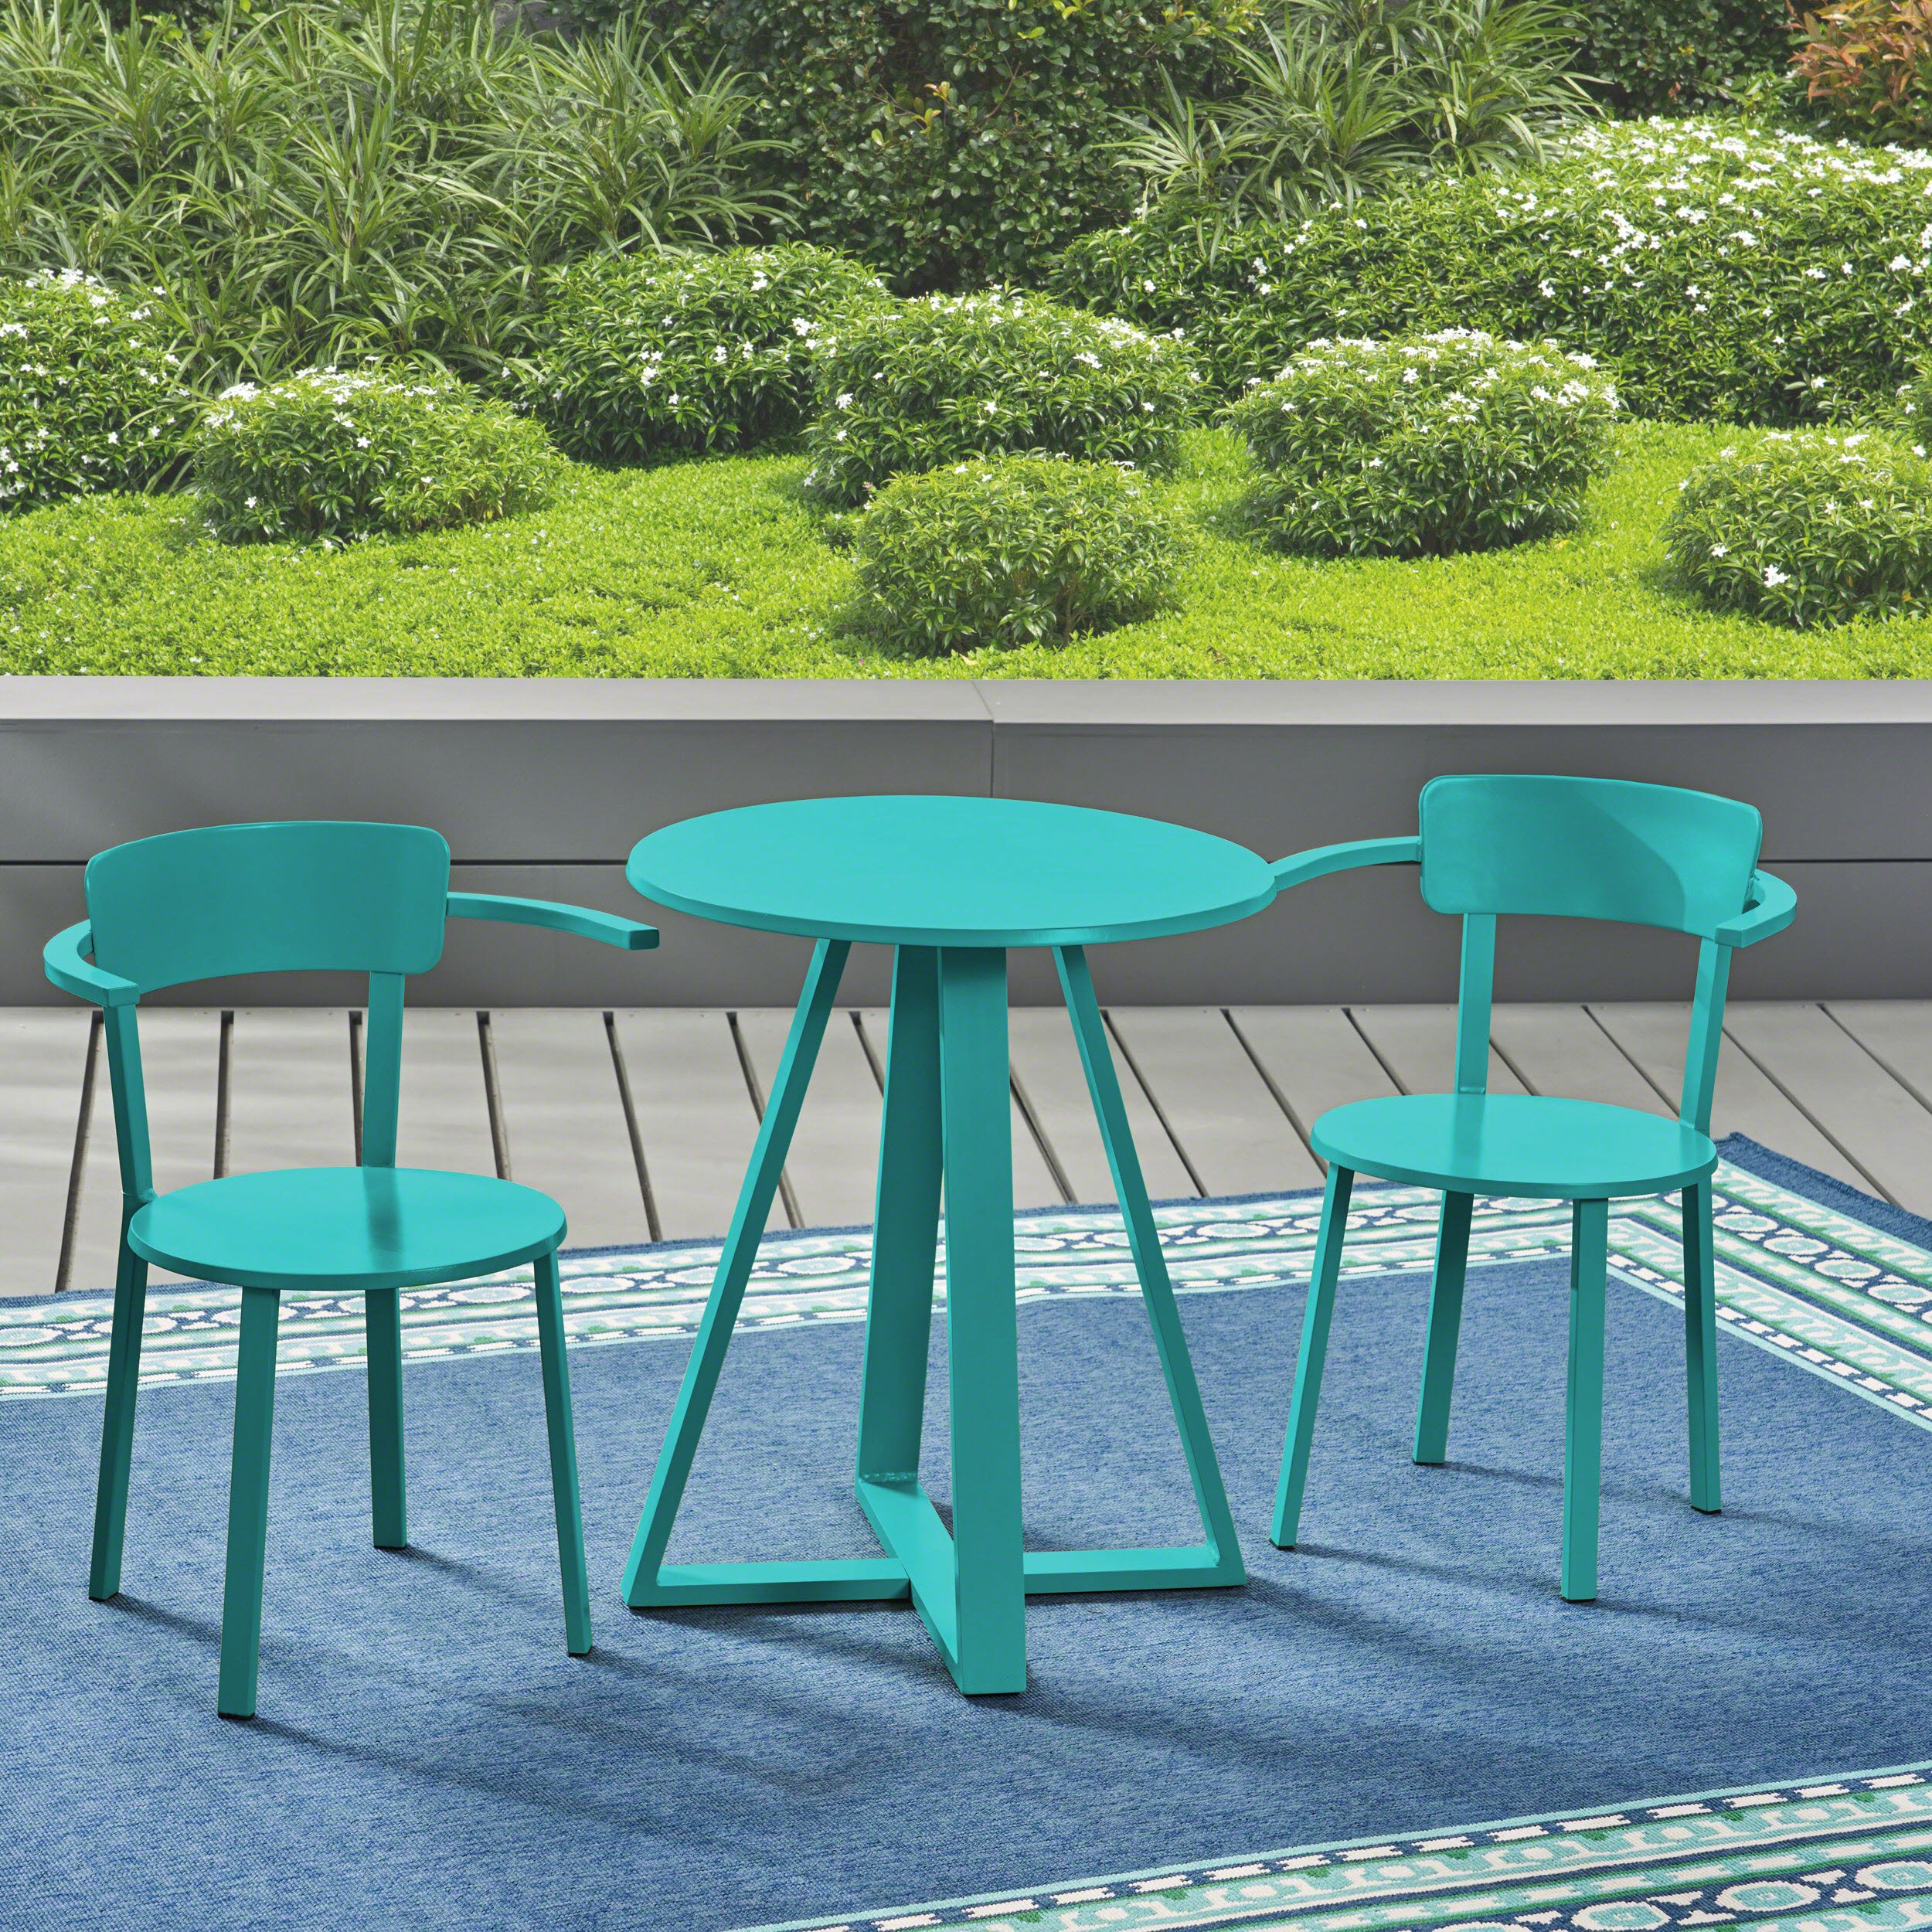 Great Deal Furniture Kate Outdoor Iron Bistro Set, Matte Teal by Great Deal Furniture (Image #3)